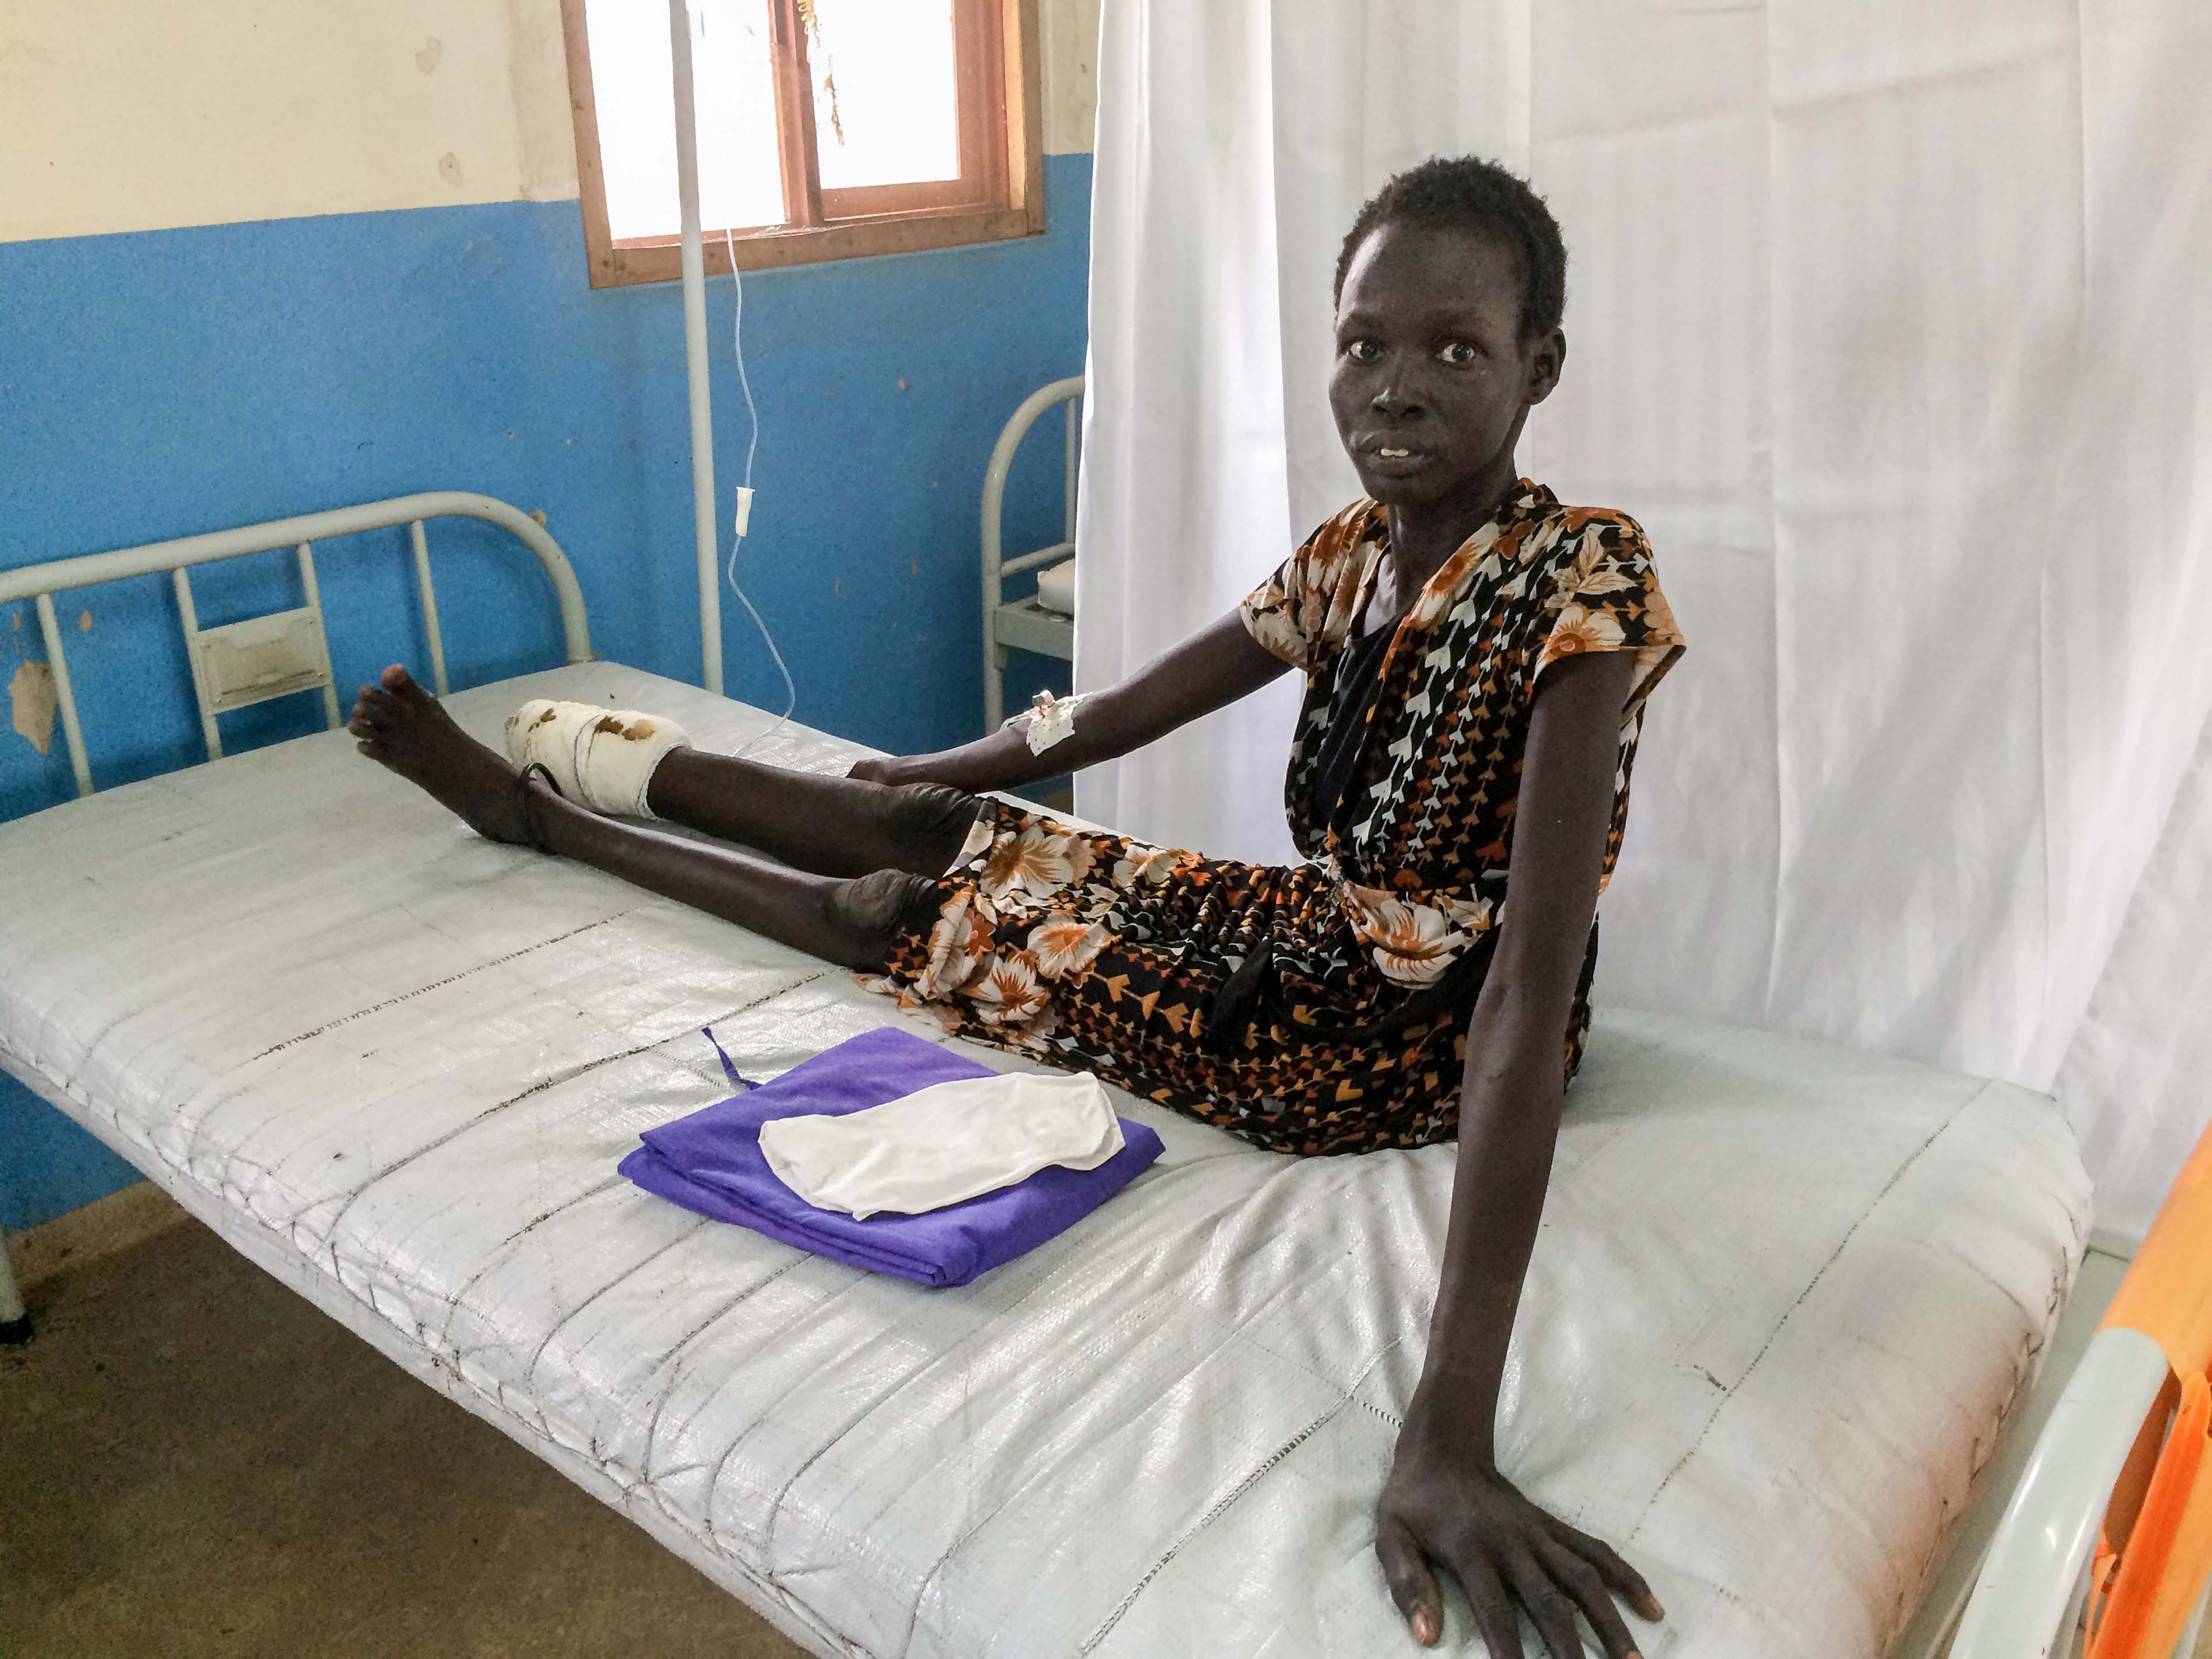 Nyekuony, 35, lost her foot and lower leg due to a snakebite that was not treated on time. She is awaiting surgery at the MSF hospital in Agok. Photograph by Alexandra Malm